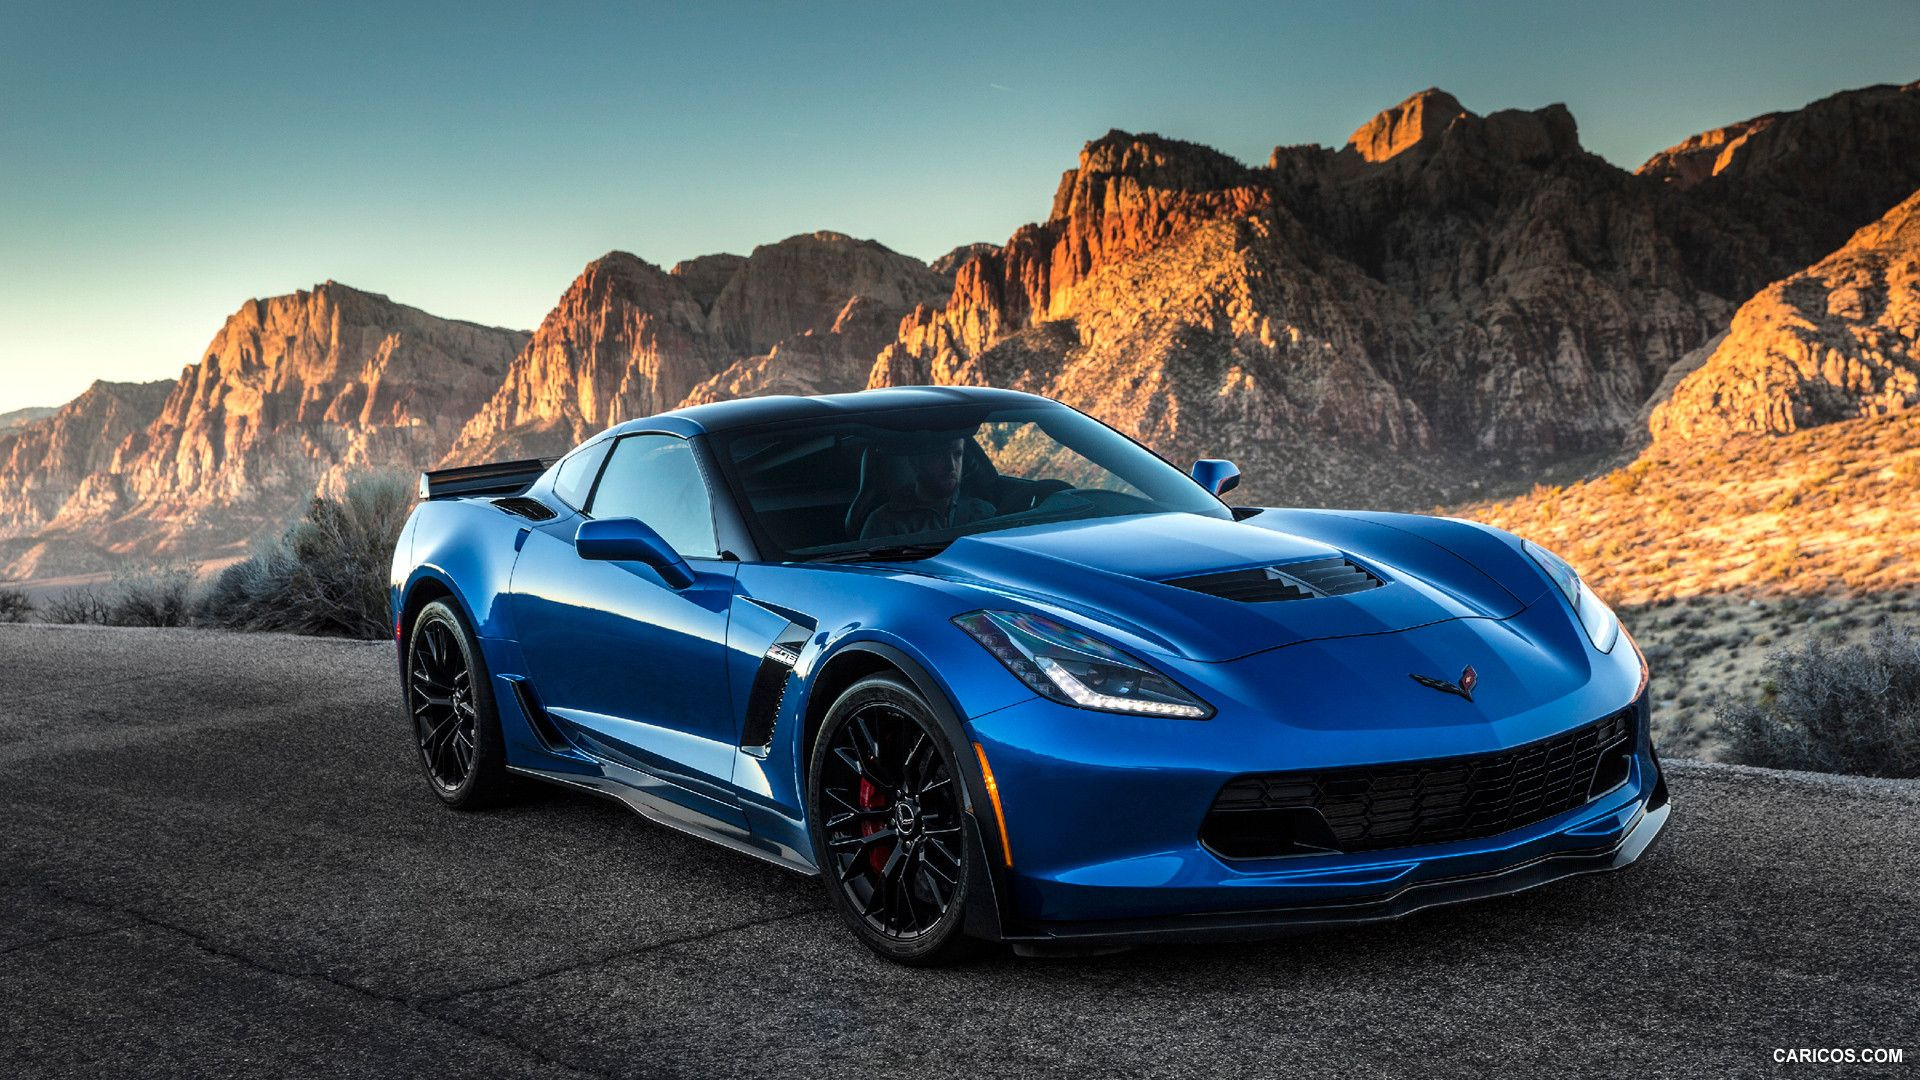 Chevrolet Corvette ZR1 Tuning Back Crystal City Car 2014. Merveilleux 2015 Chevrolet  Corvette Z06 Front | HD Wallpaper #101